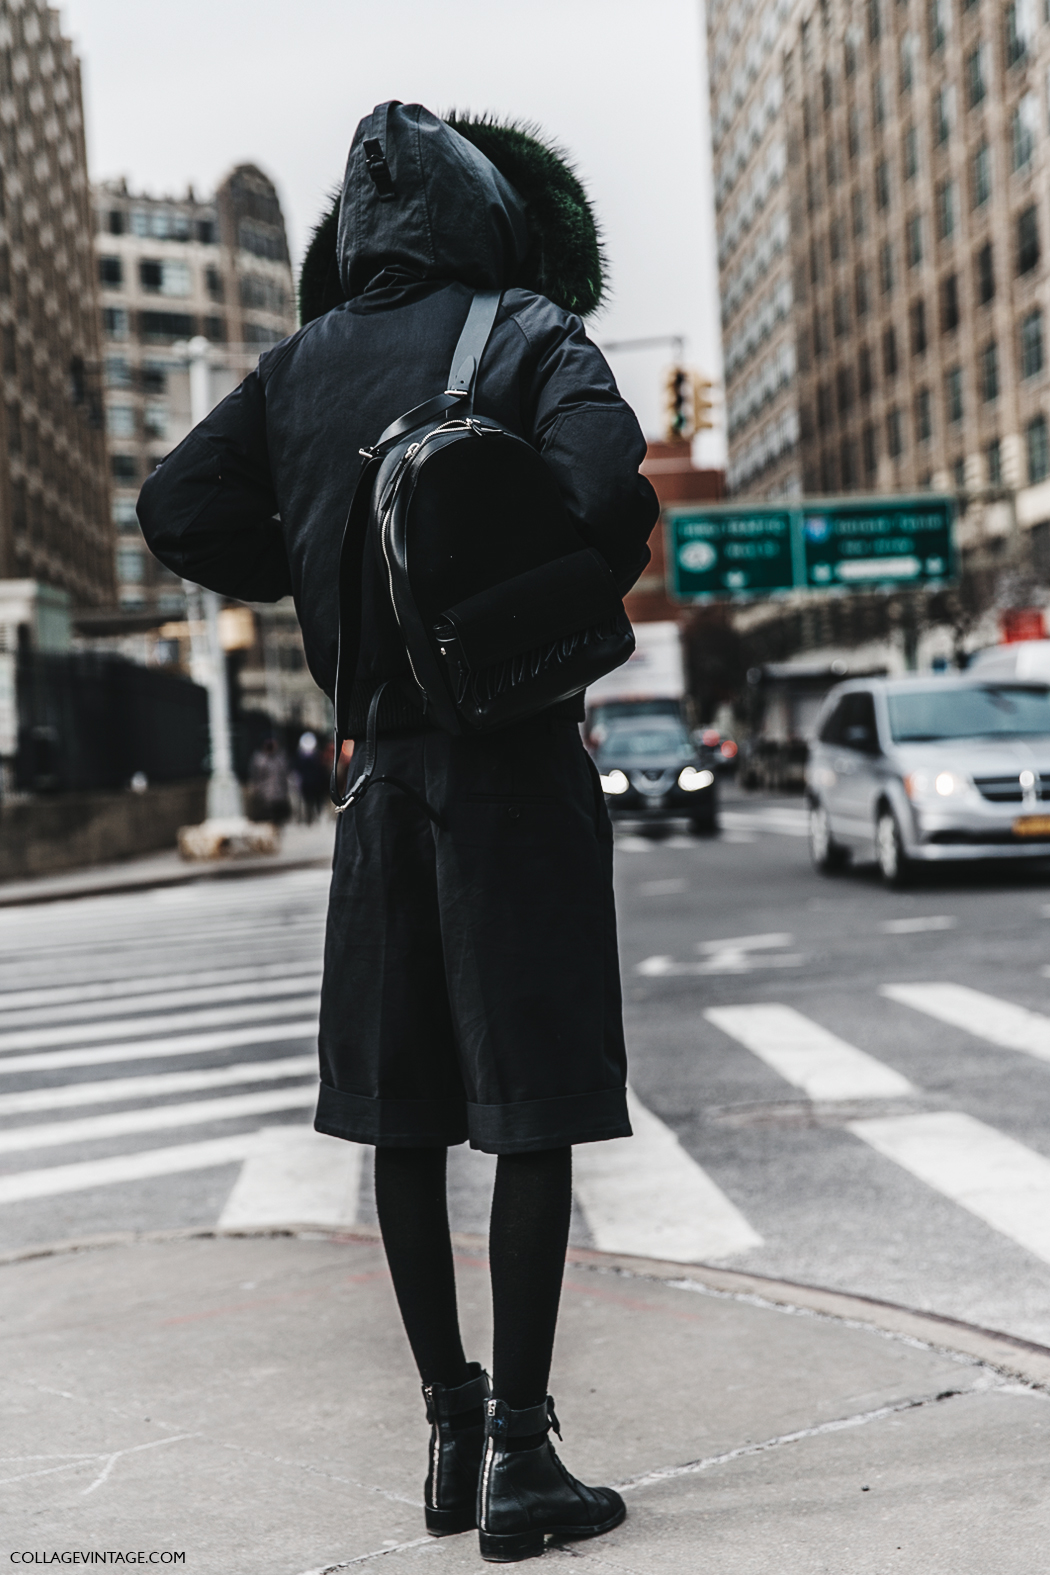 NYFW-New_York_Fashion_Week-Fall_Winter-17-Street_Style-Shorts-Bomber_Jacket-Black_Outfit-Backpack-1